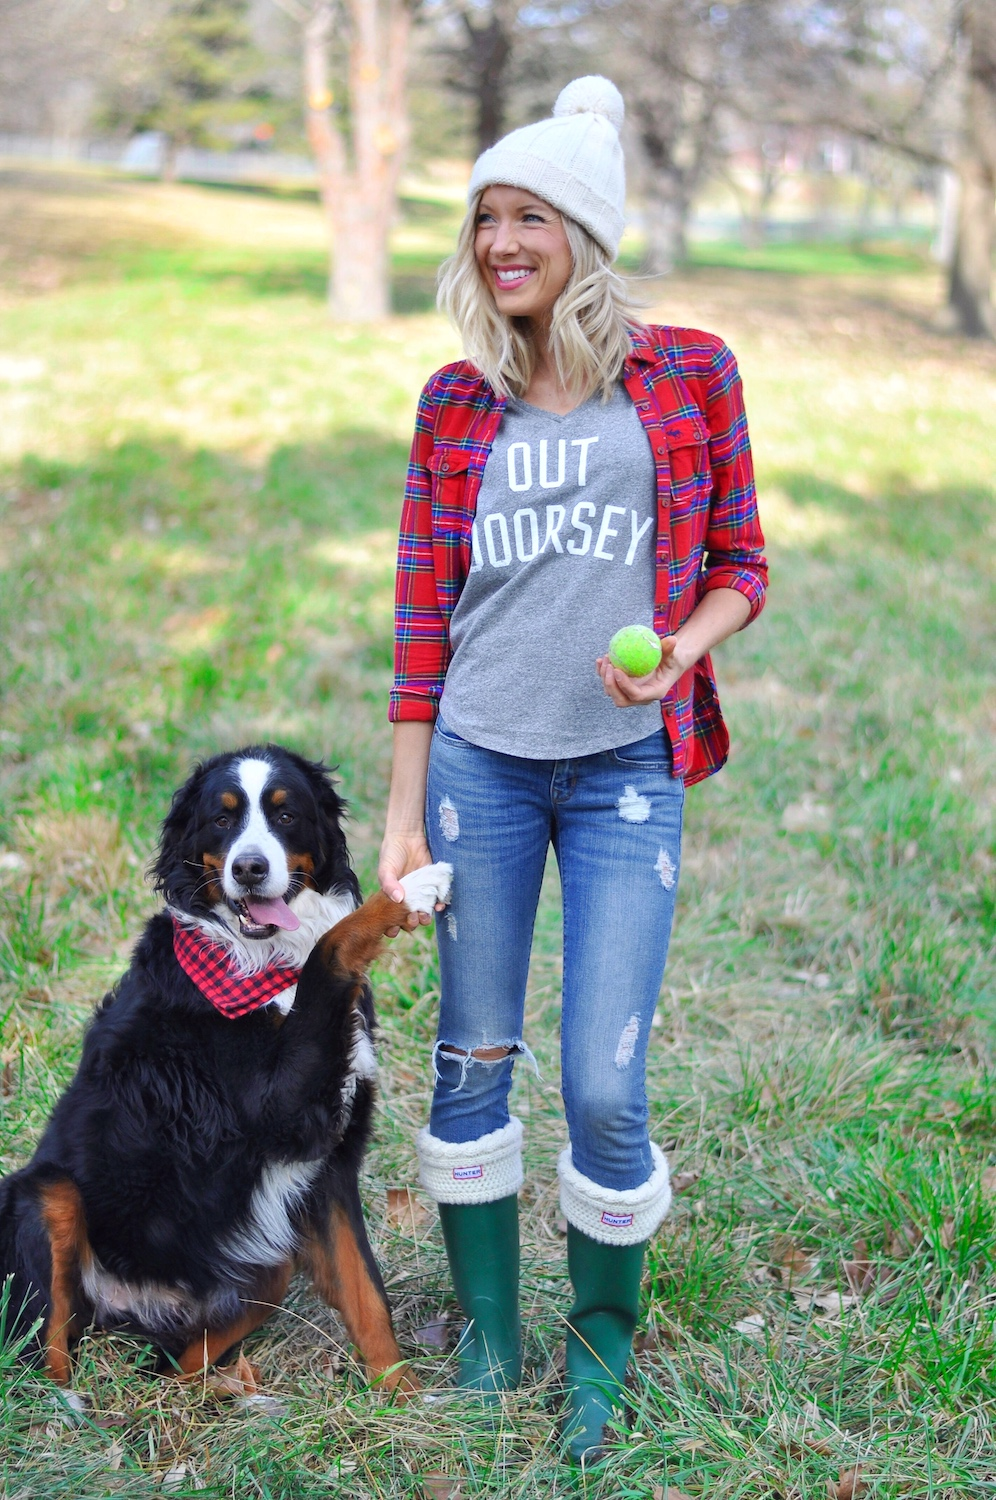 Erin Stanczyk   Lifestyle Design   EatMoveRest   2017 Holiday Gift Guide: His+Hers+Home (Vegan/Cruelty-Free!)